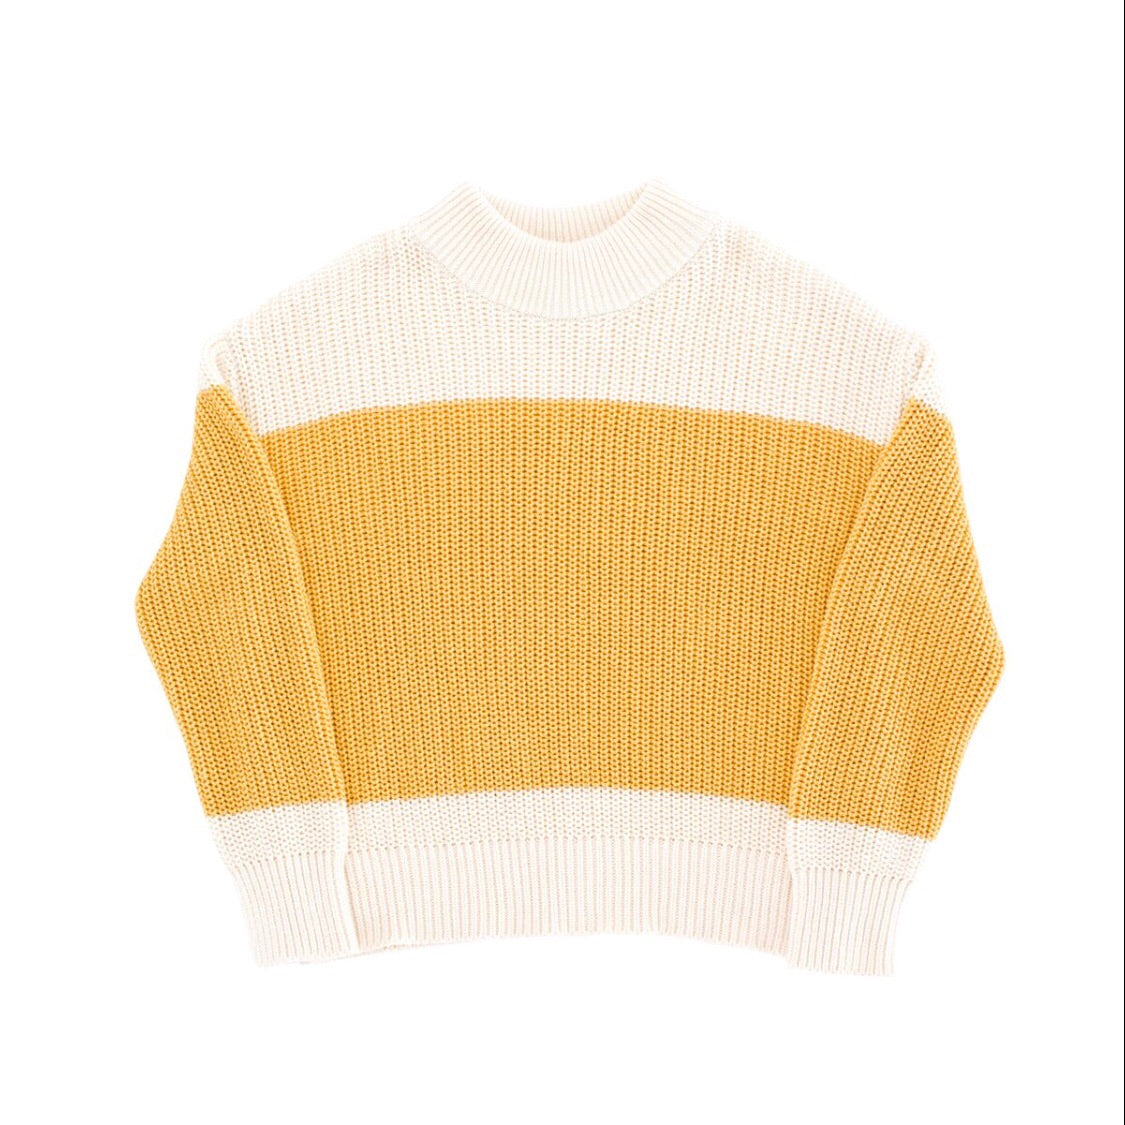 Tiny Cottons Color Block Knit Sweater - Beige/Sand